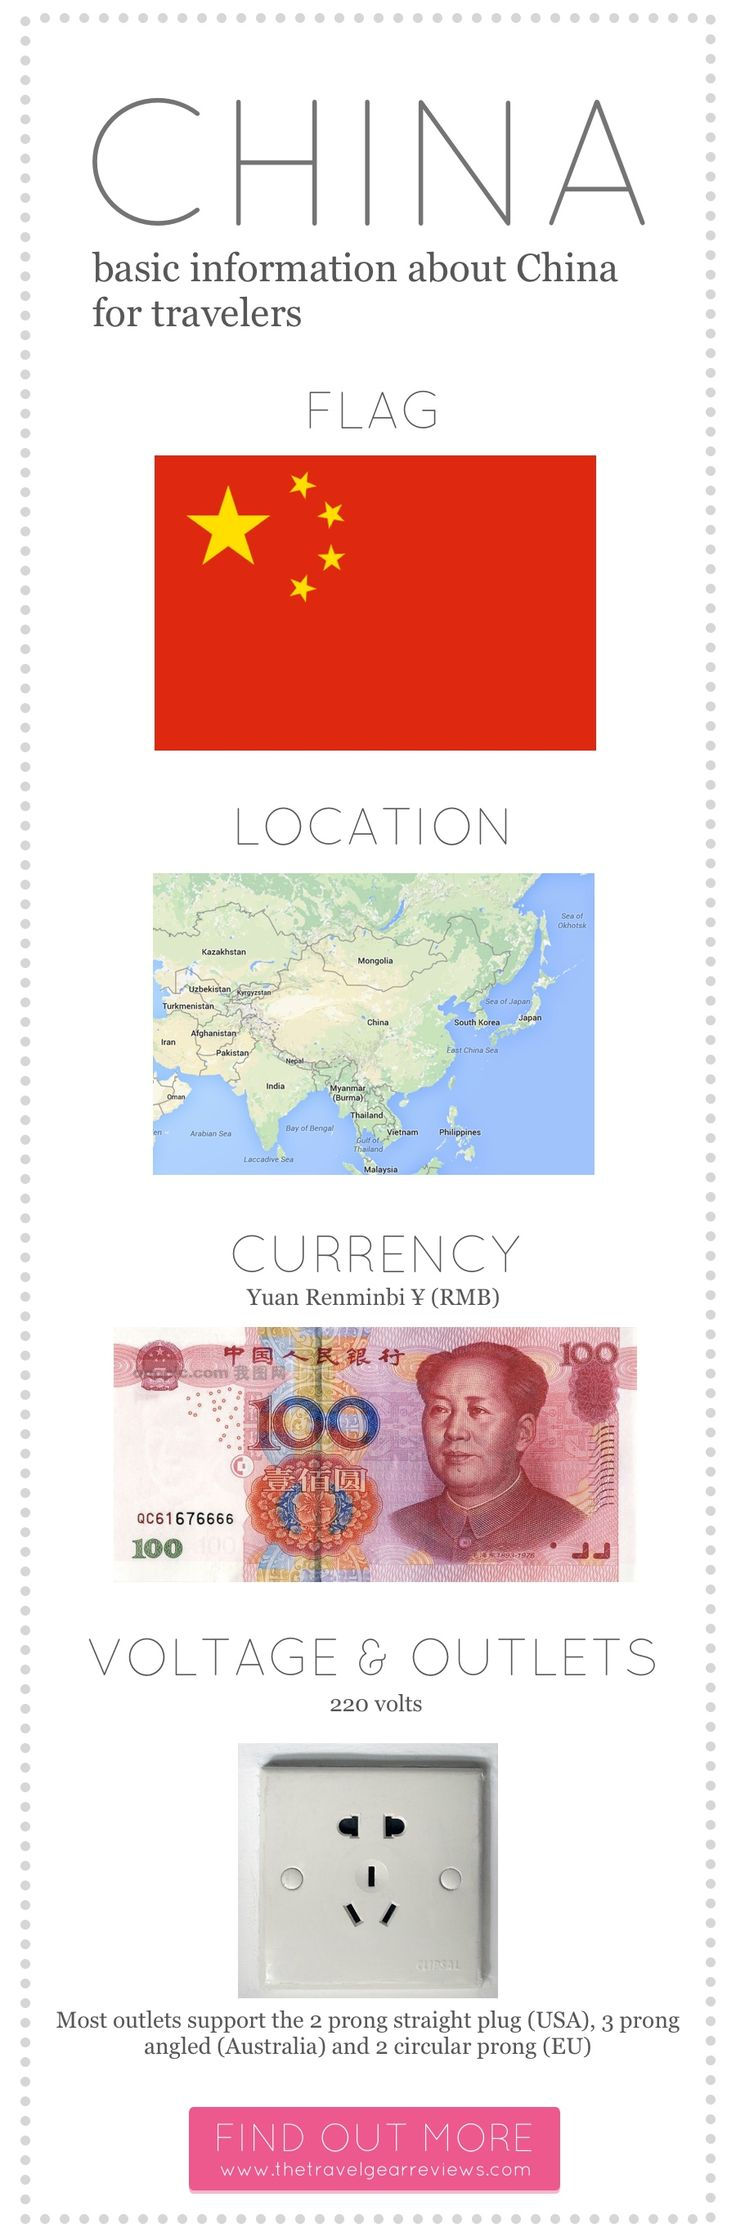 Basic info about #China for travelers. China's voltage, outlets, the Chinese flag and more.